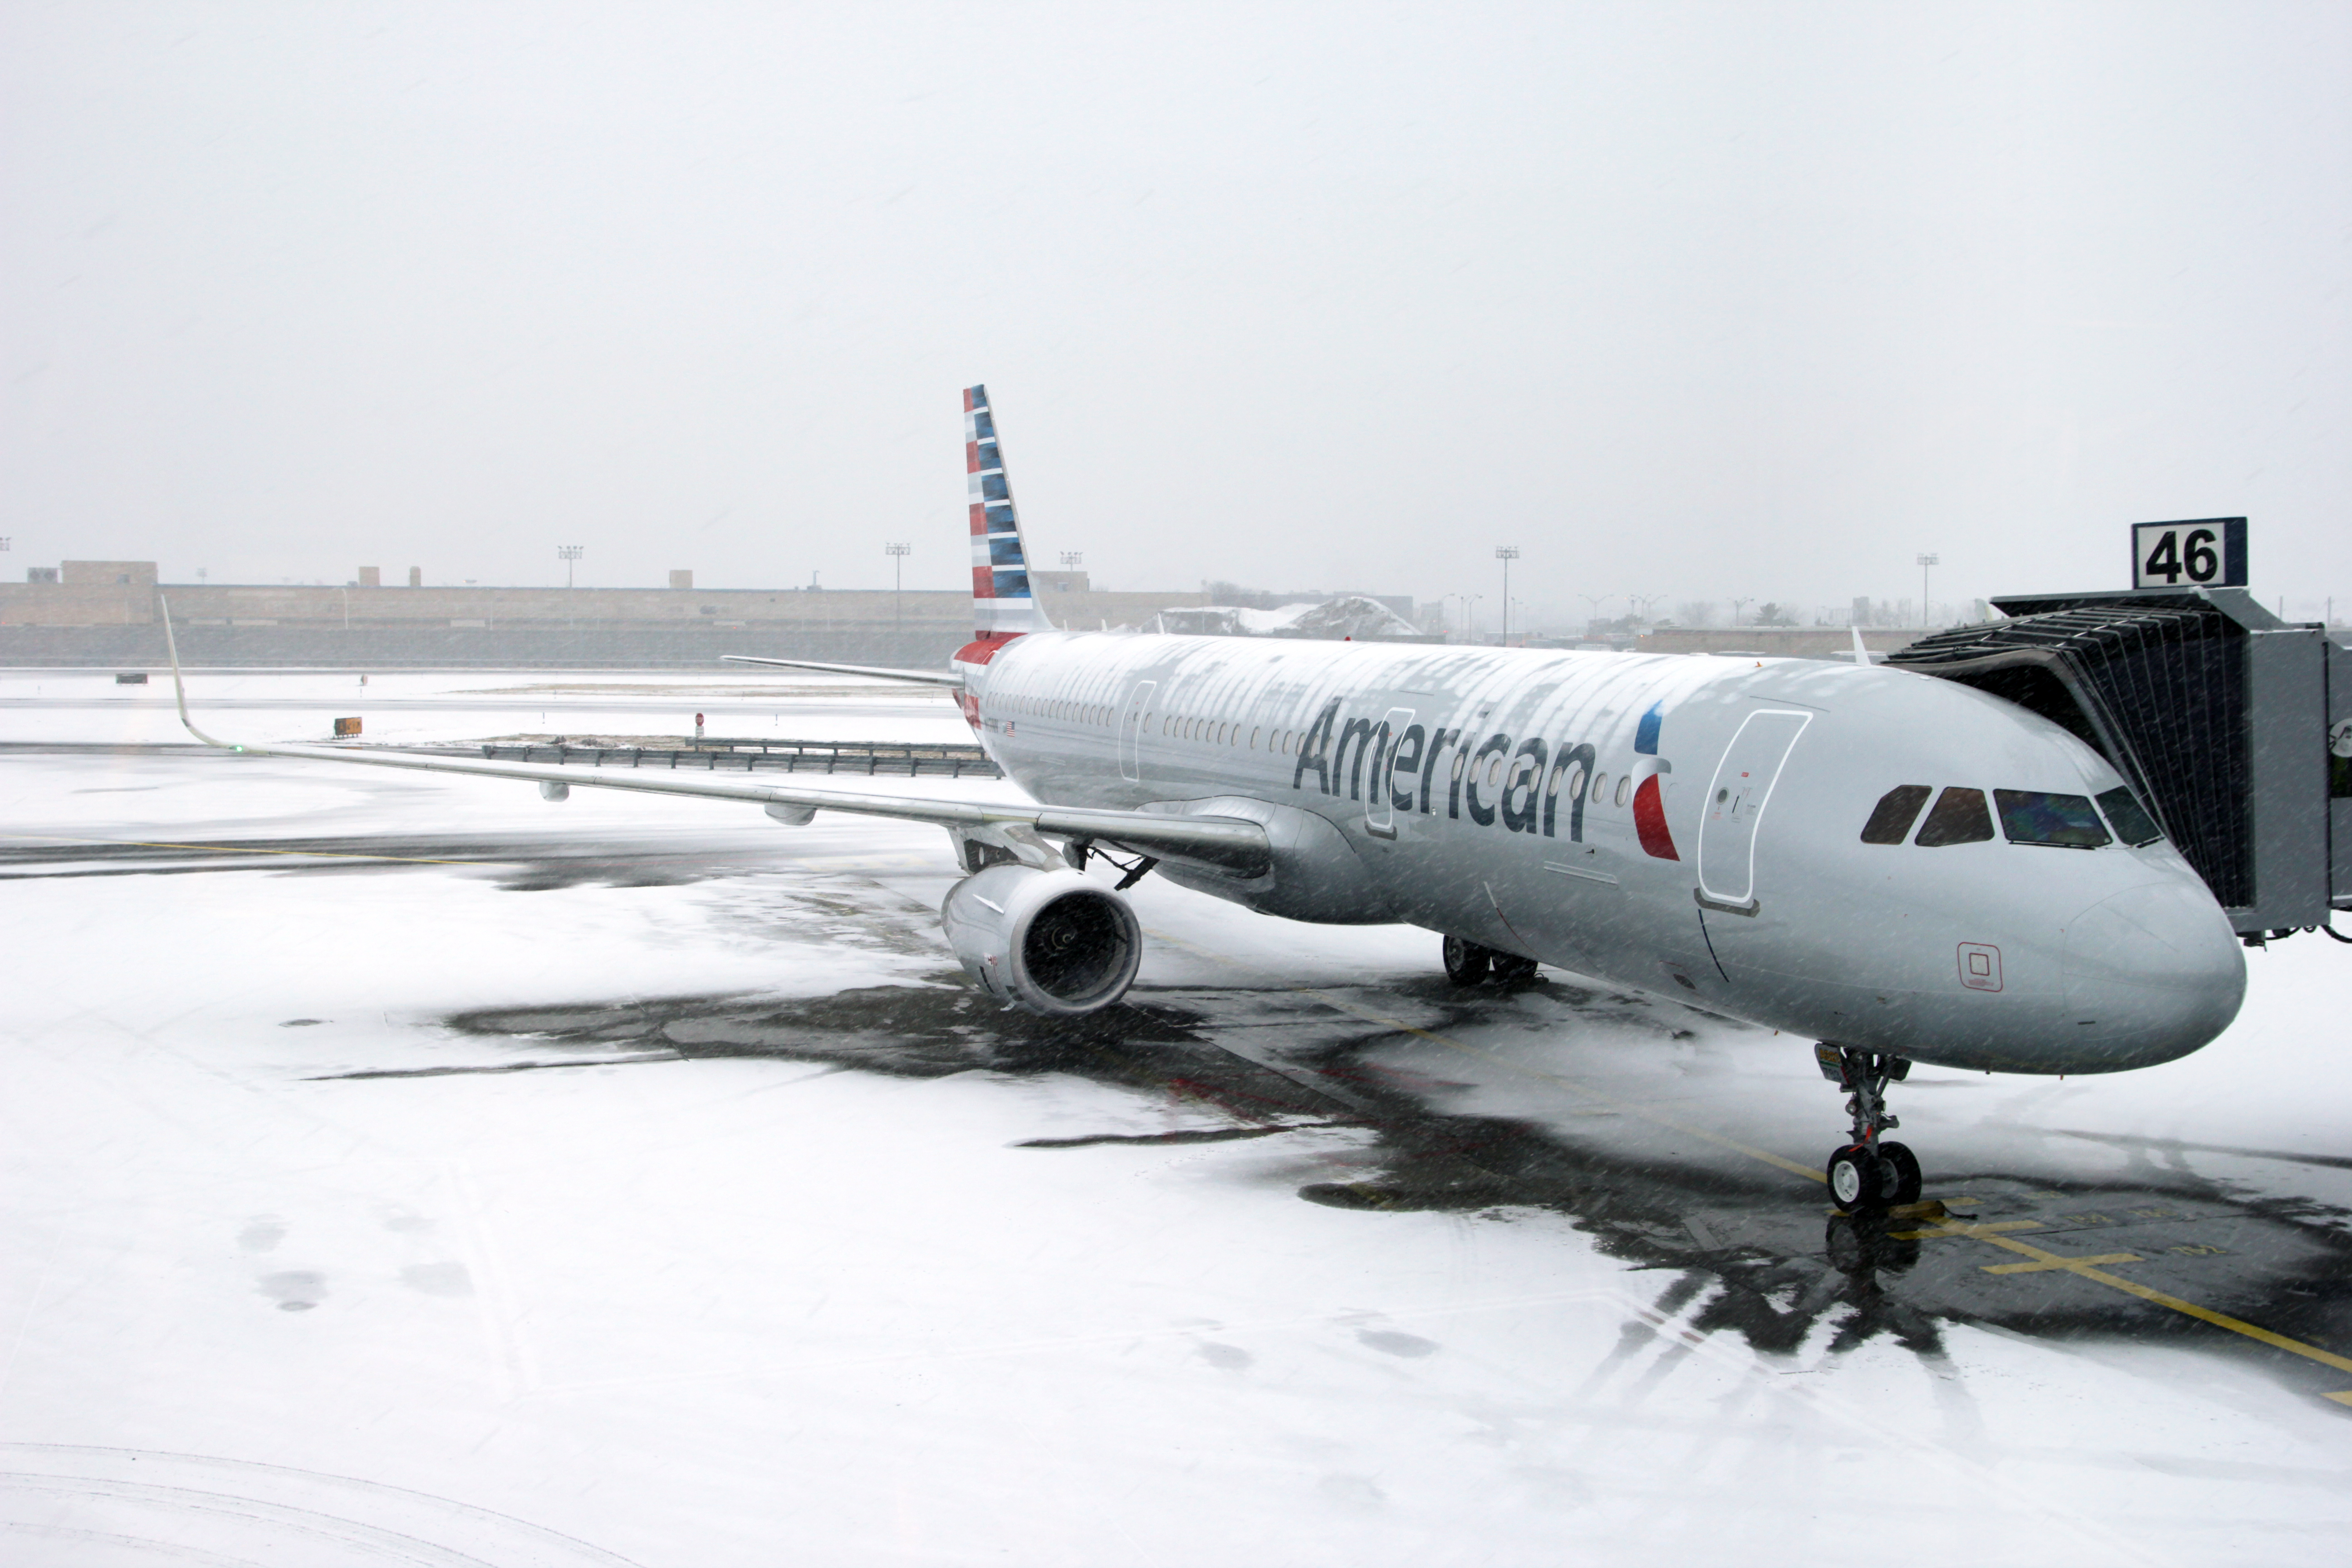 american airlines inc and us airways American airlines plans manager layoffs, buyouts to slim down 5 years after us airways merger american airlines is planning to cut jobs and offer buyouts to reduce its headcount the cuts come about five years after its merger with us airways.